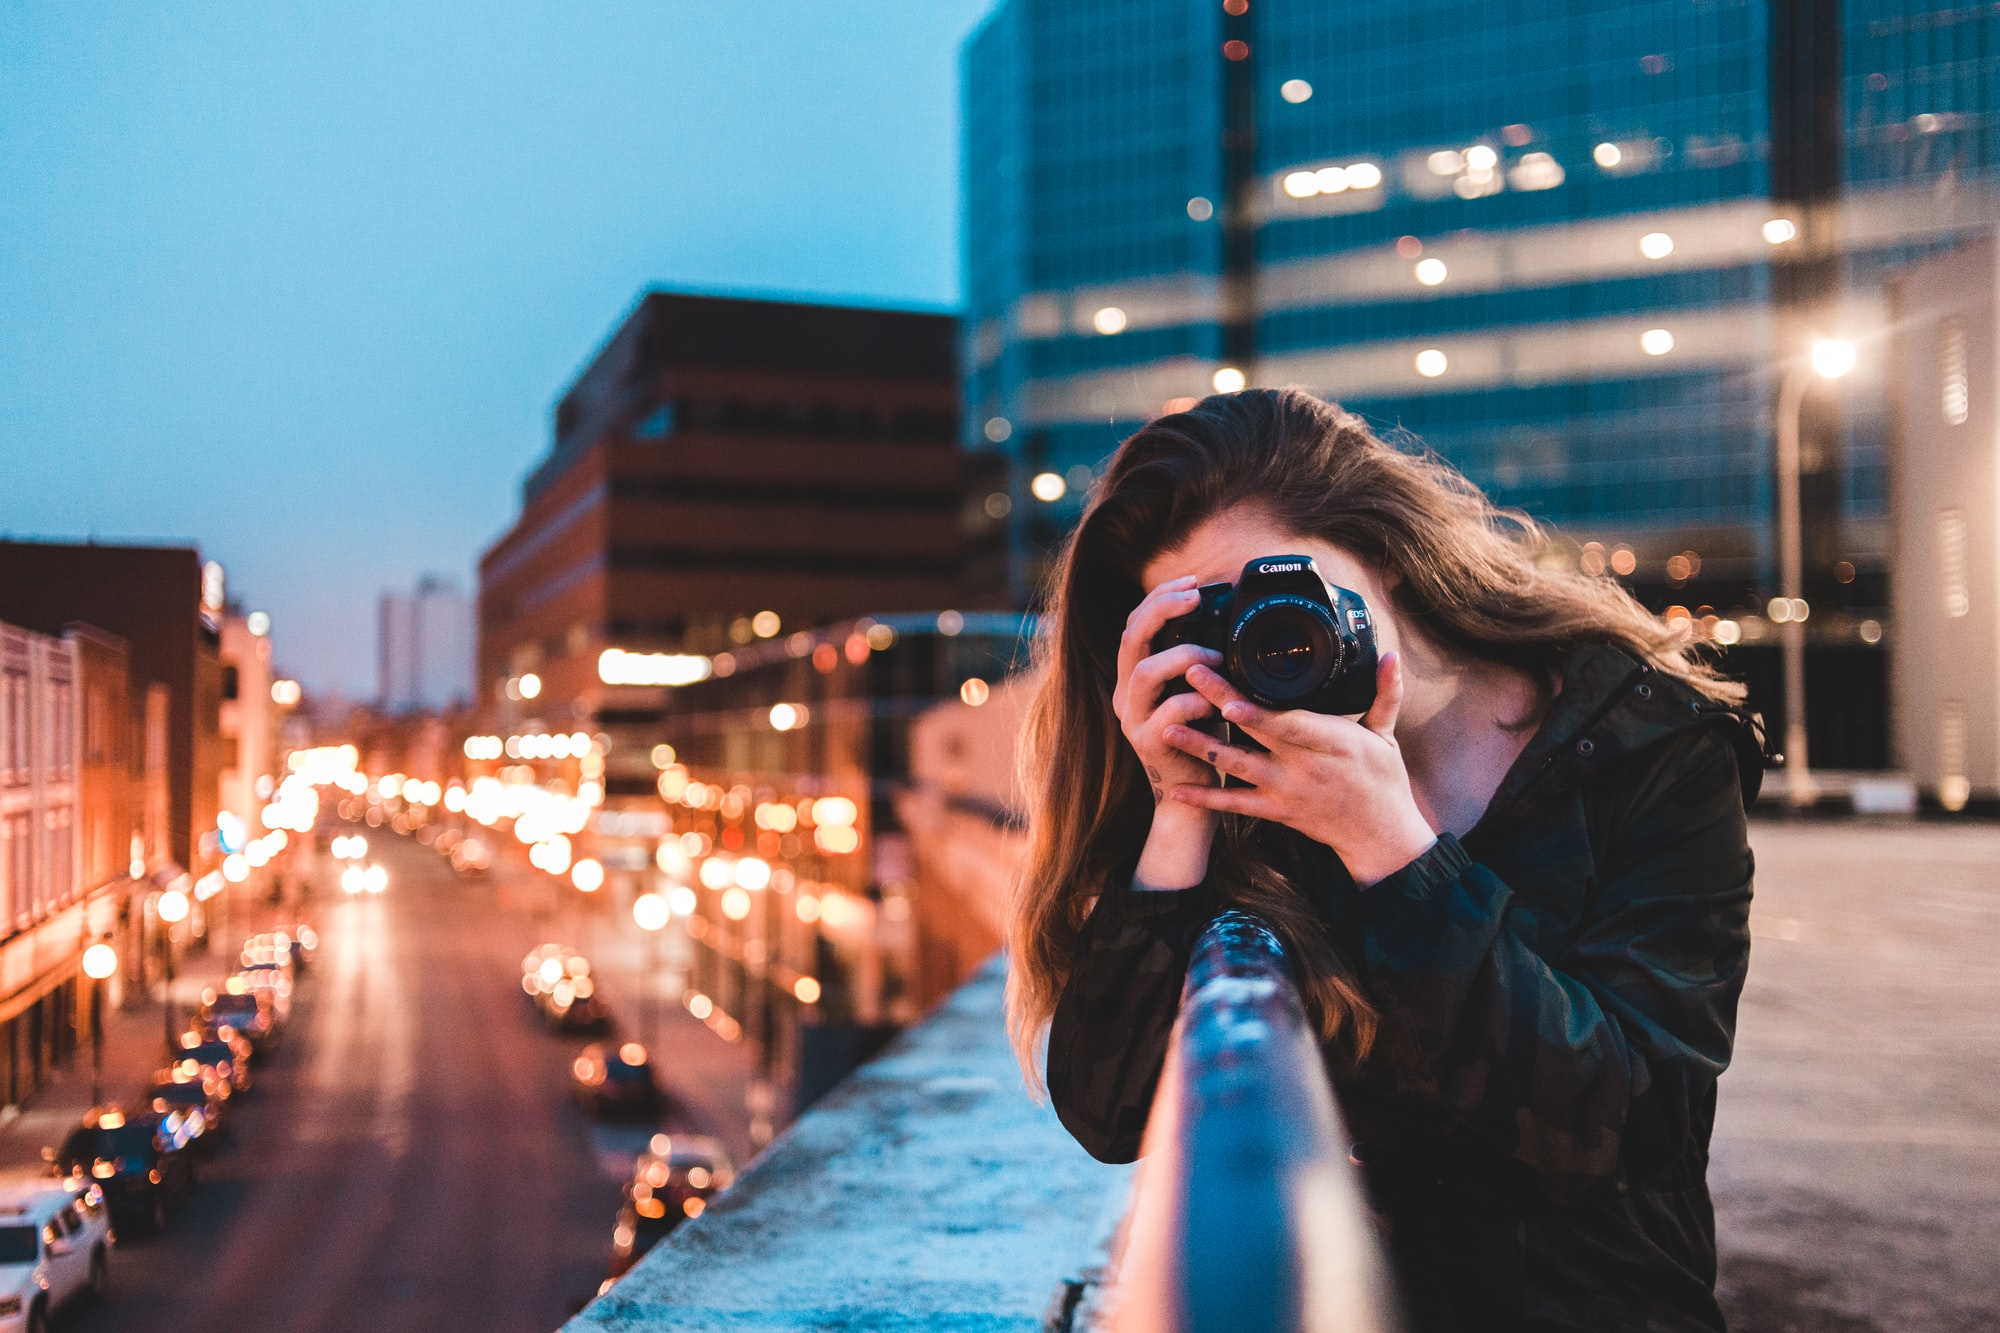 The 6 Best Photography Schools You Need to Know in London